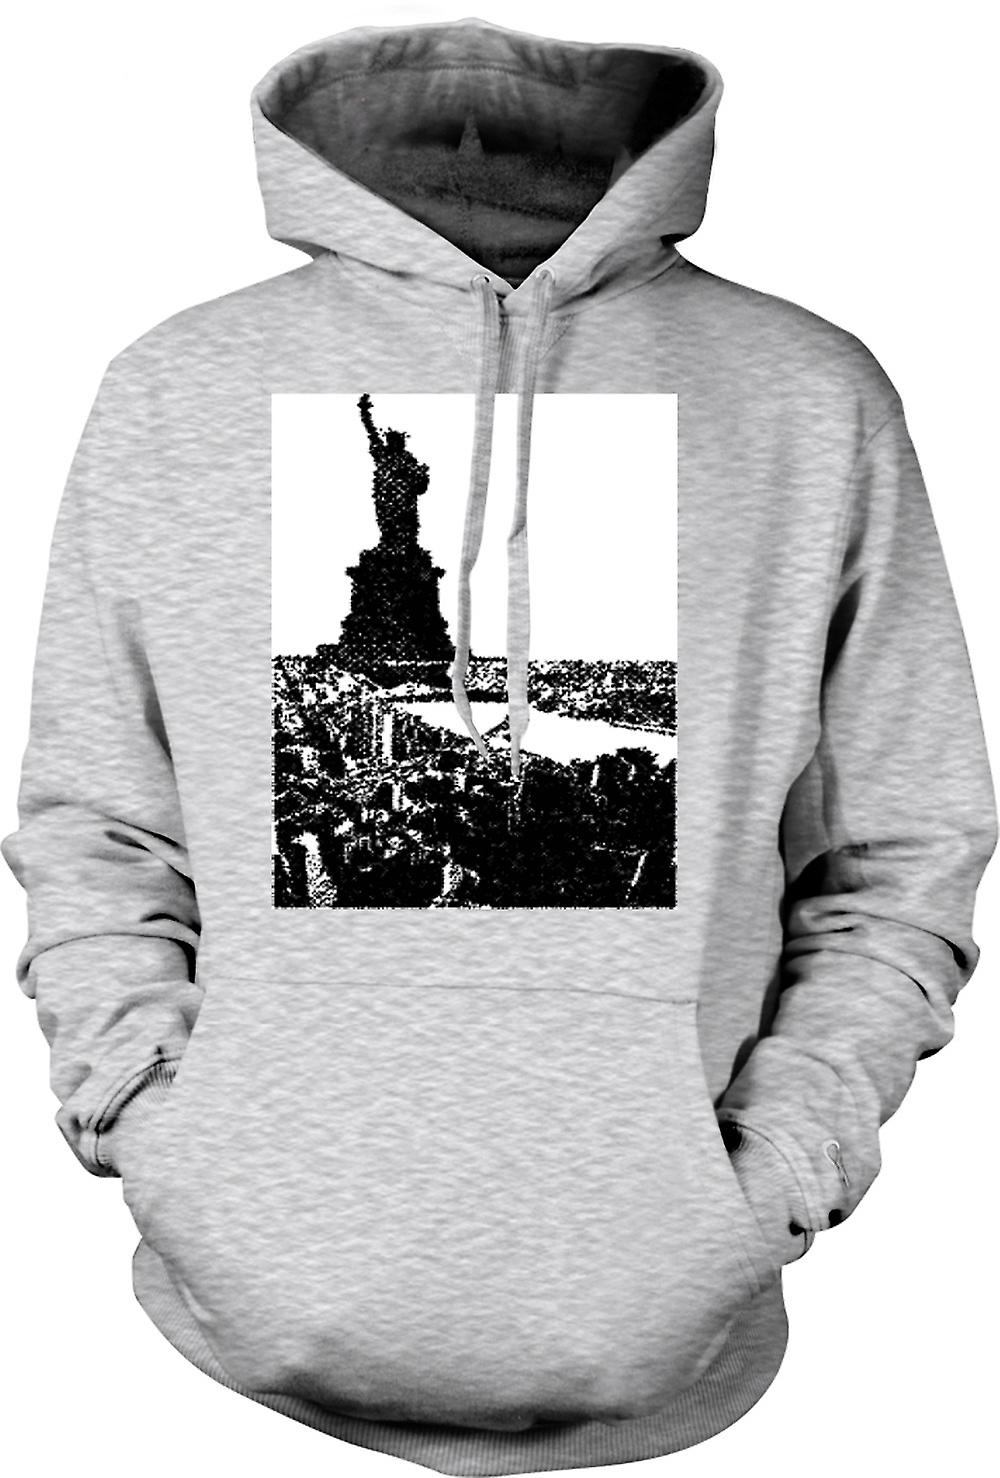 Mens Hoodie - USA Statue of Liberty Art